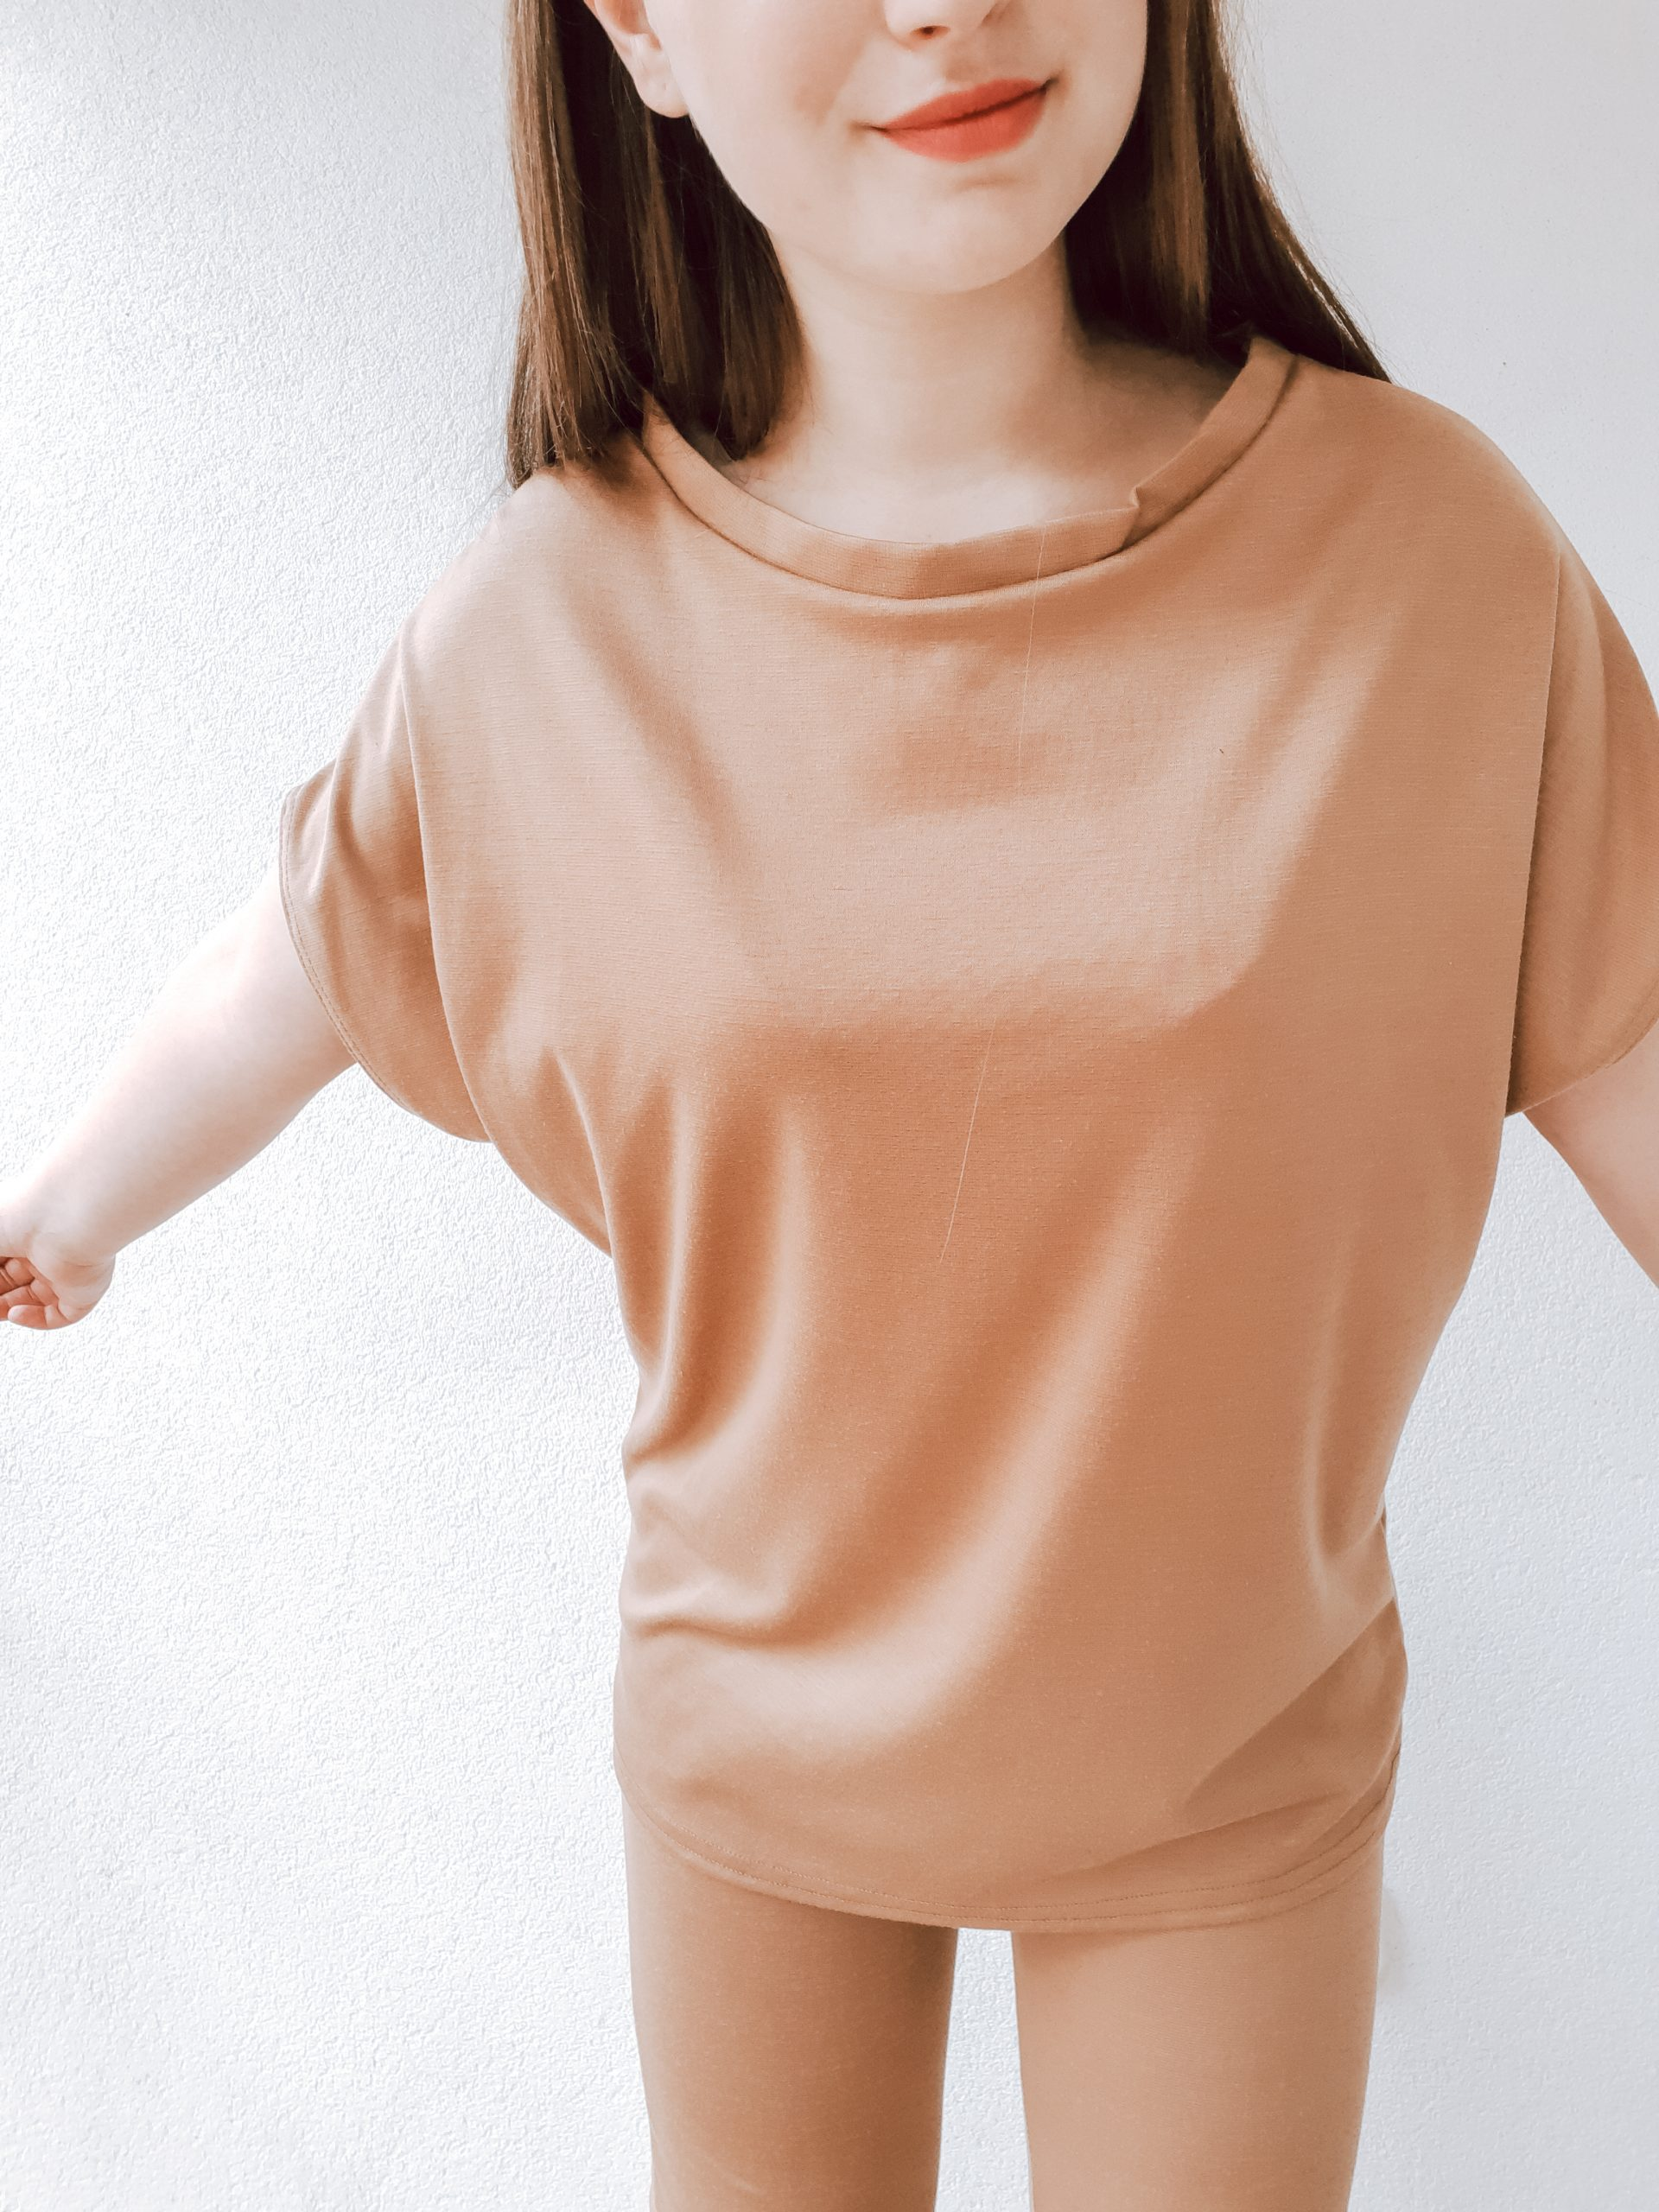 Camel Short Sleeve Boxy Loungewear Set - Lacy femme luxe review haul